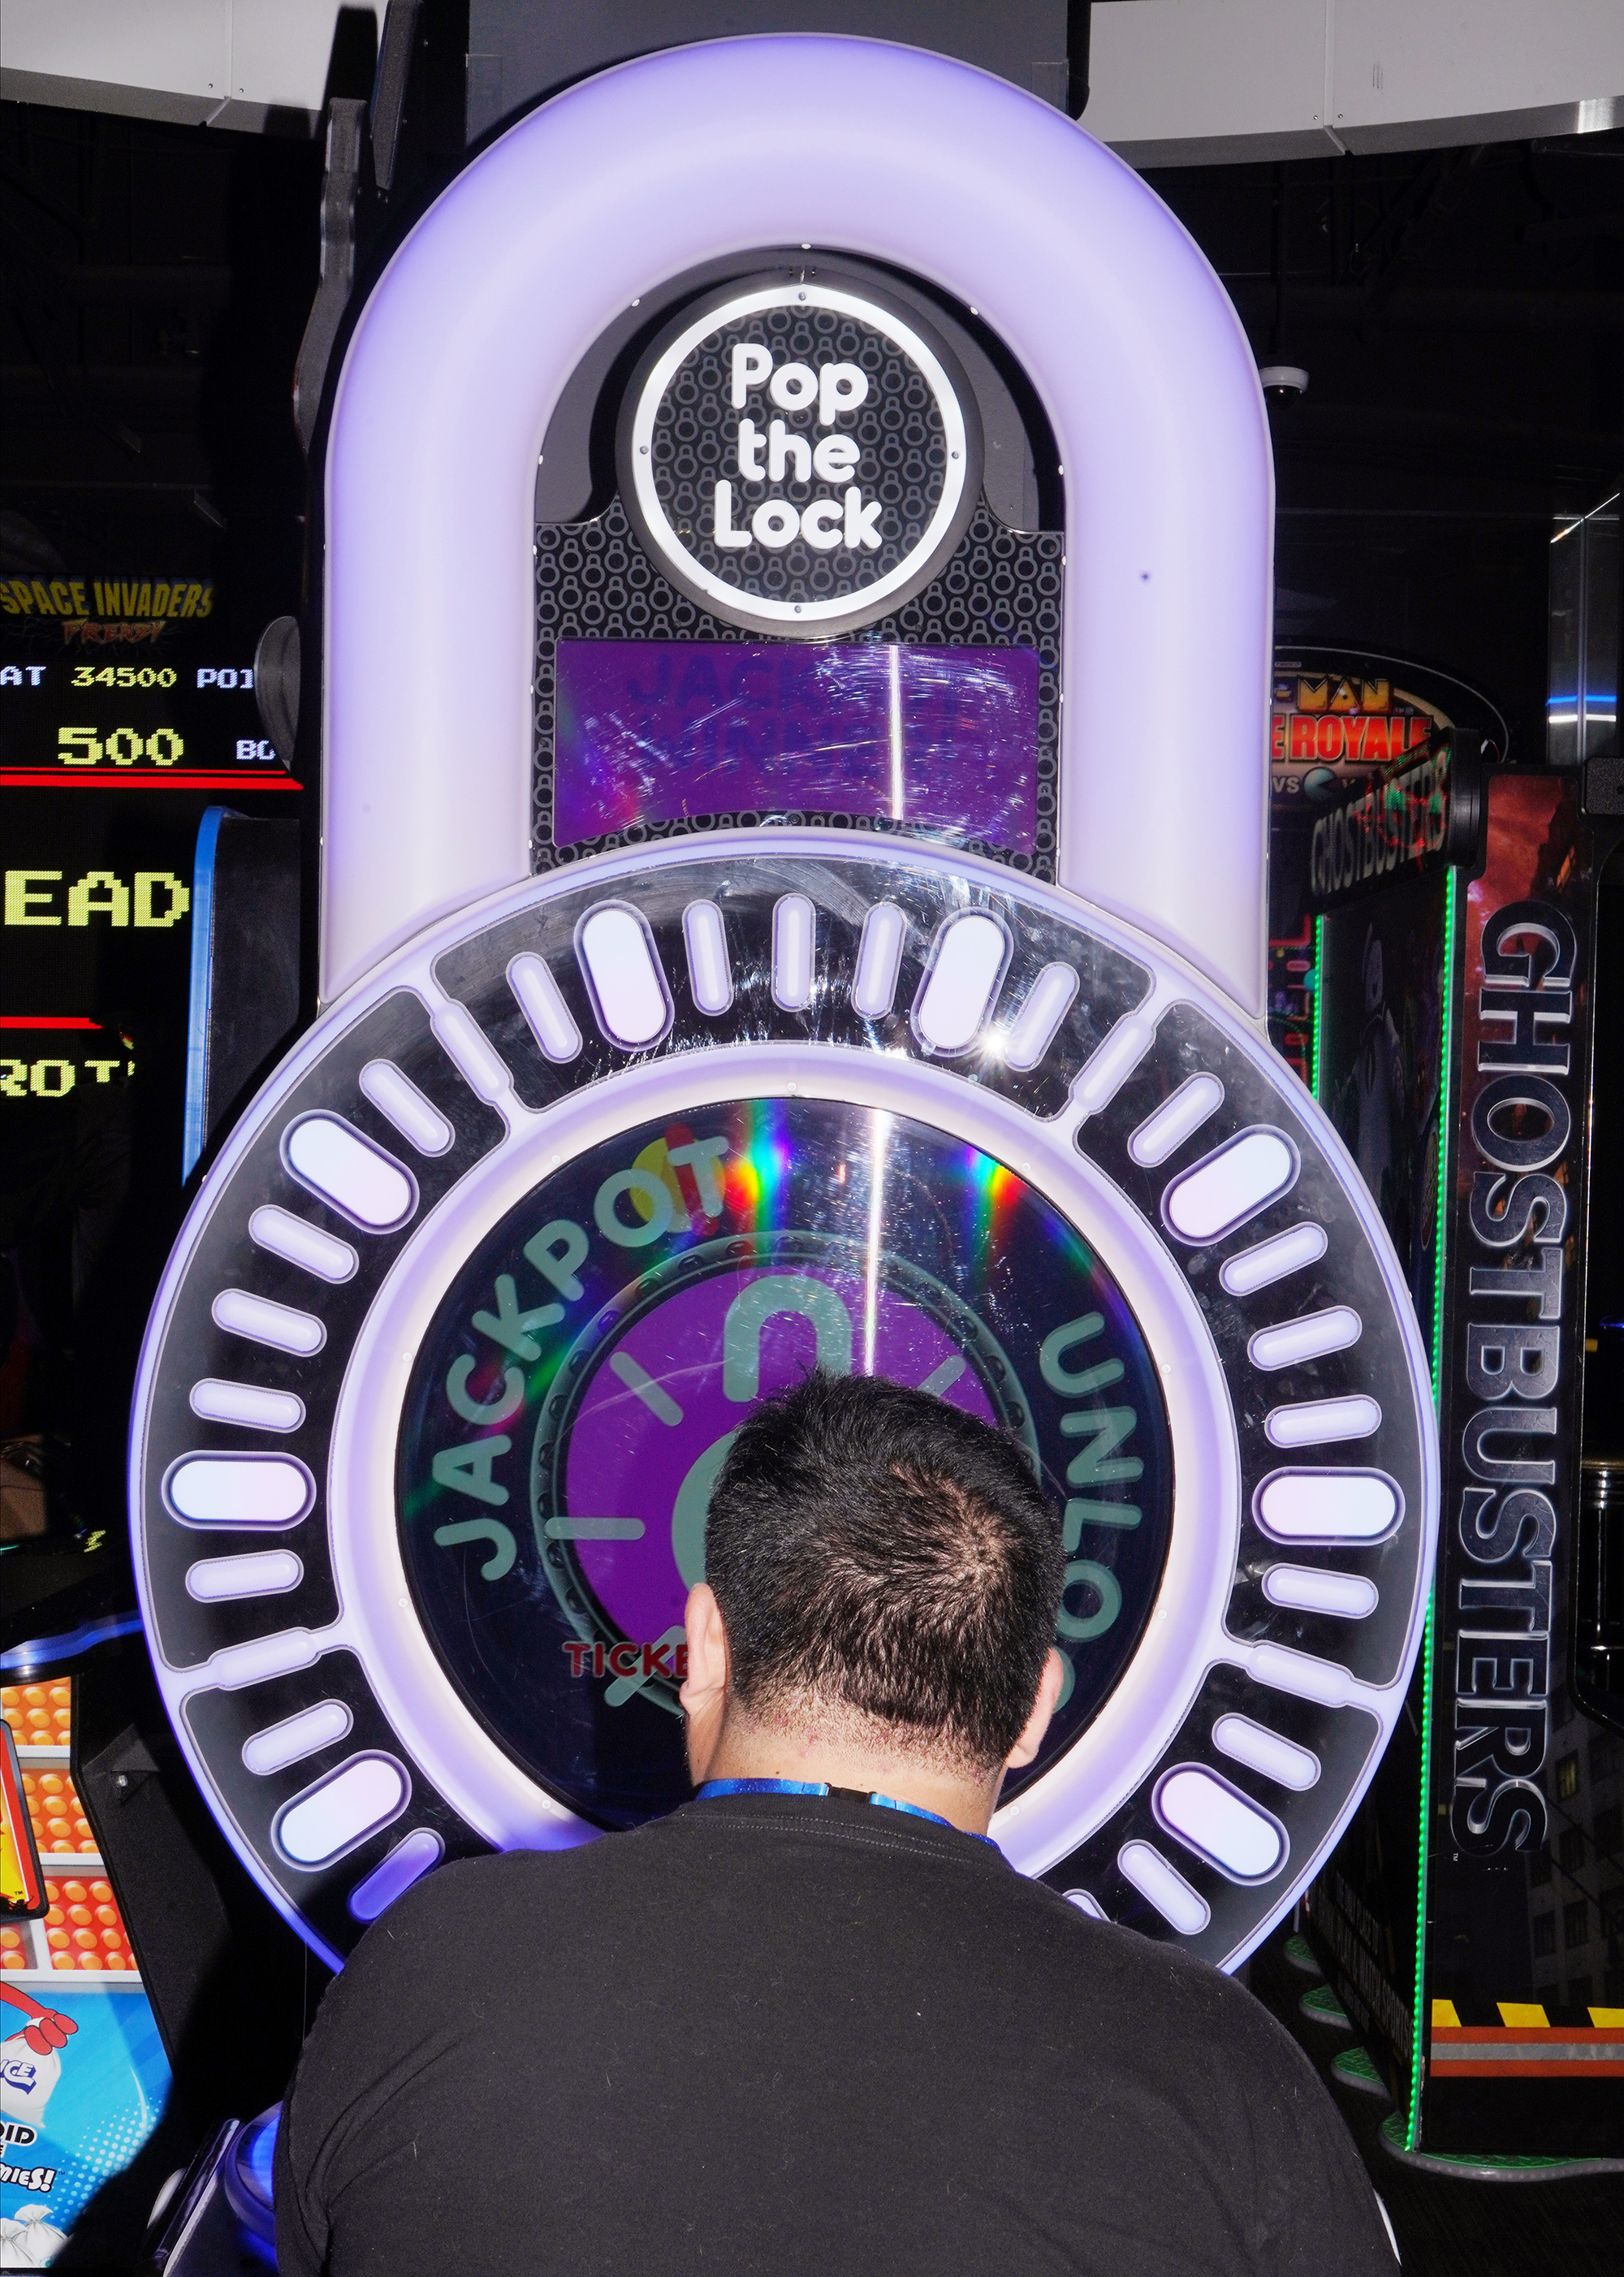 The back of a man's head as he plays an arcade game called 'Pop the Lock'